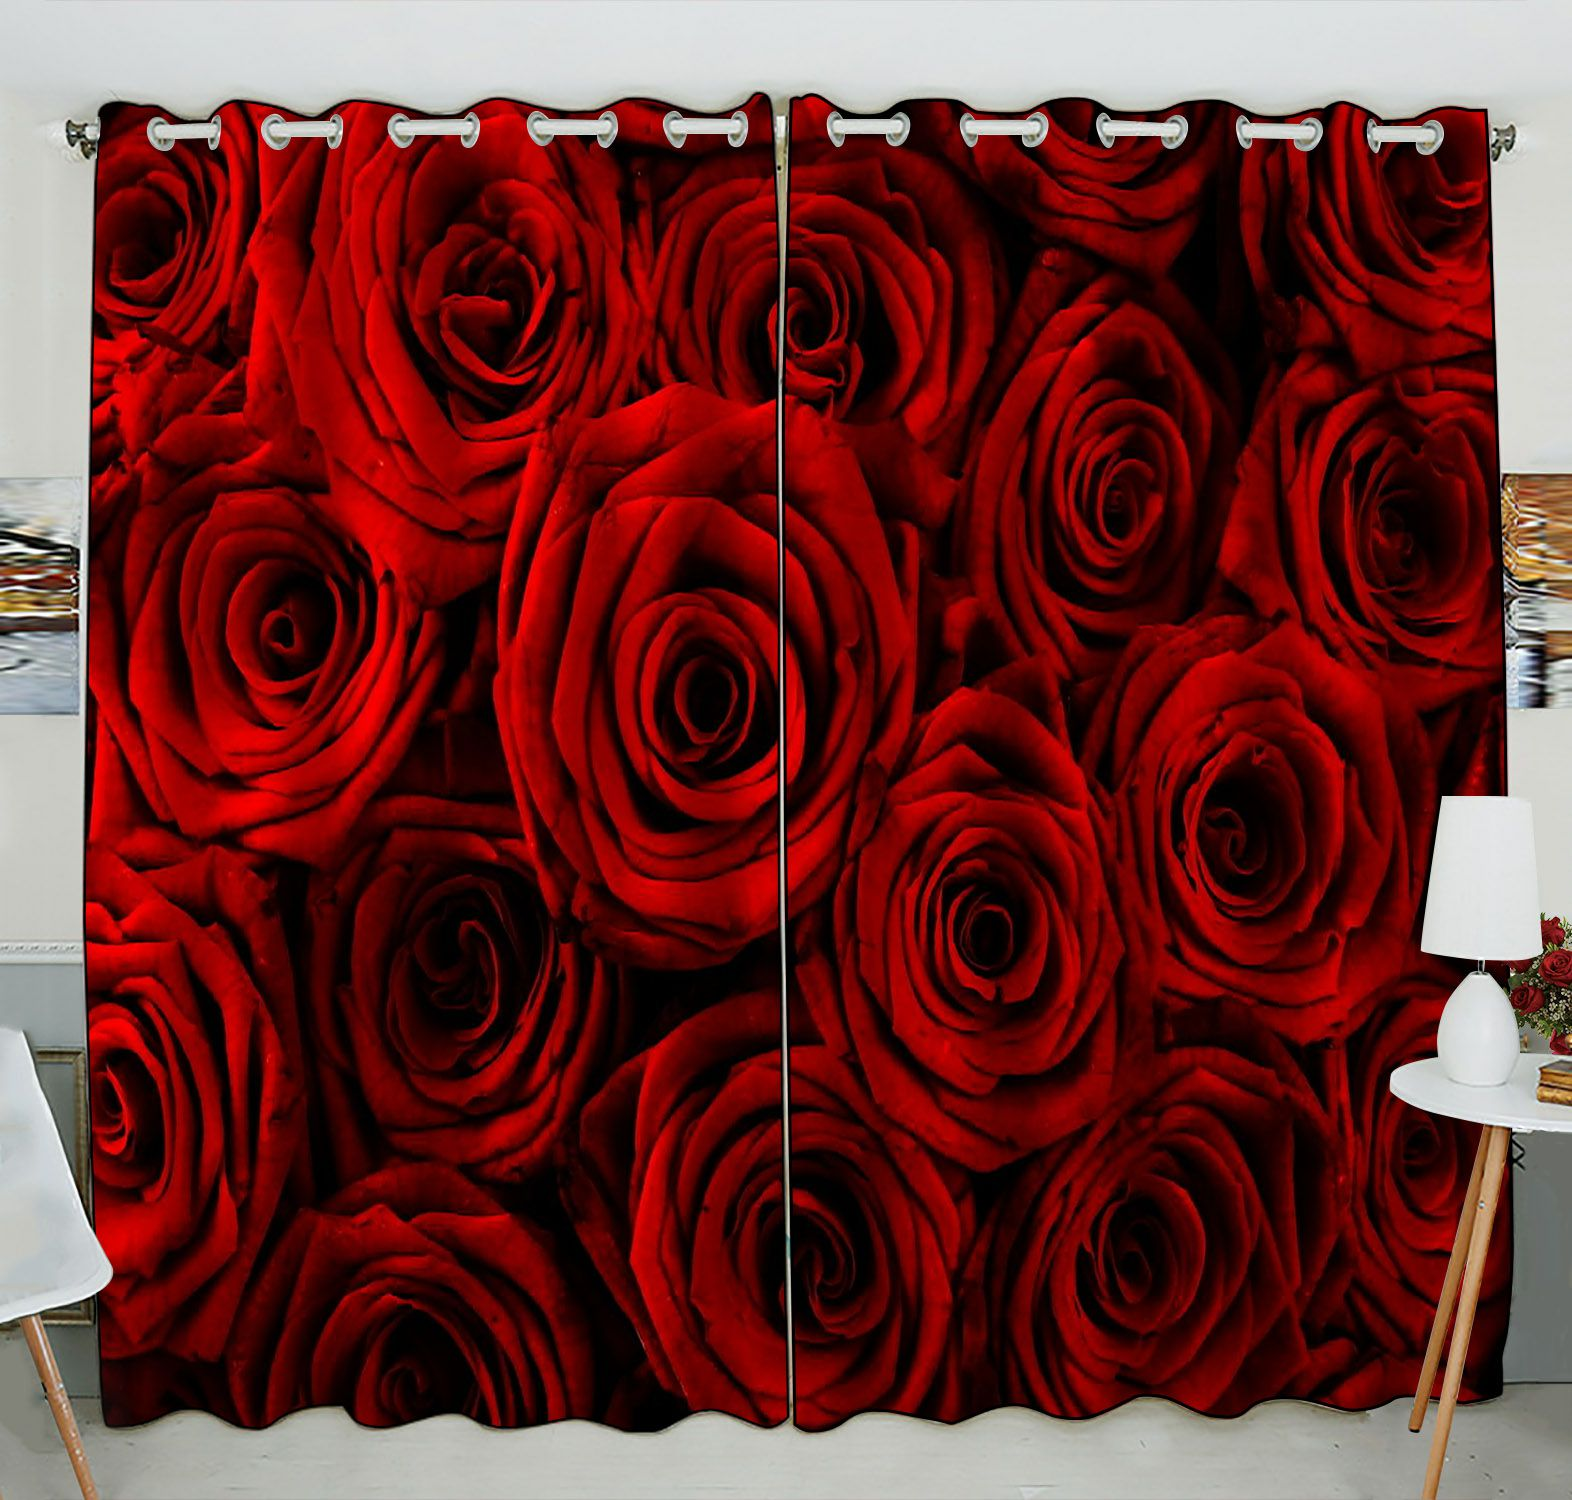 ZKGK Red Rose Flower Floral Pattern Window Curtain Drapery/Panels/Treatment For Living Room Bedroom Kids Rooms 52x84 inches Two Panel